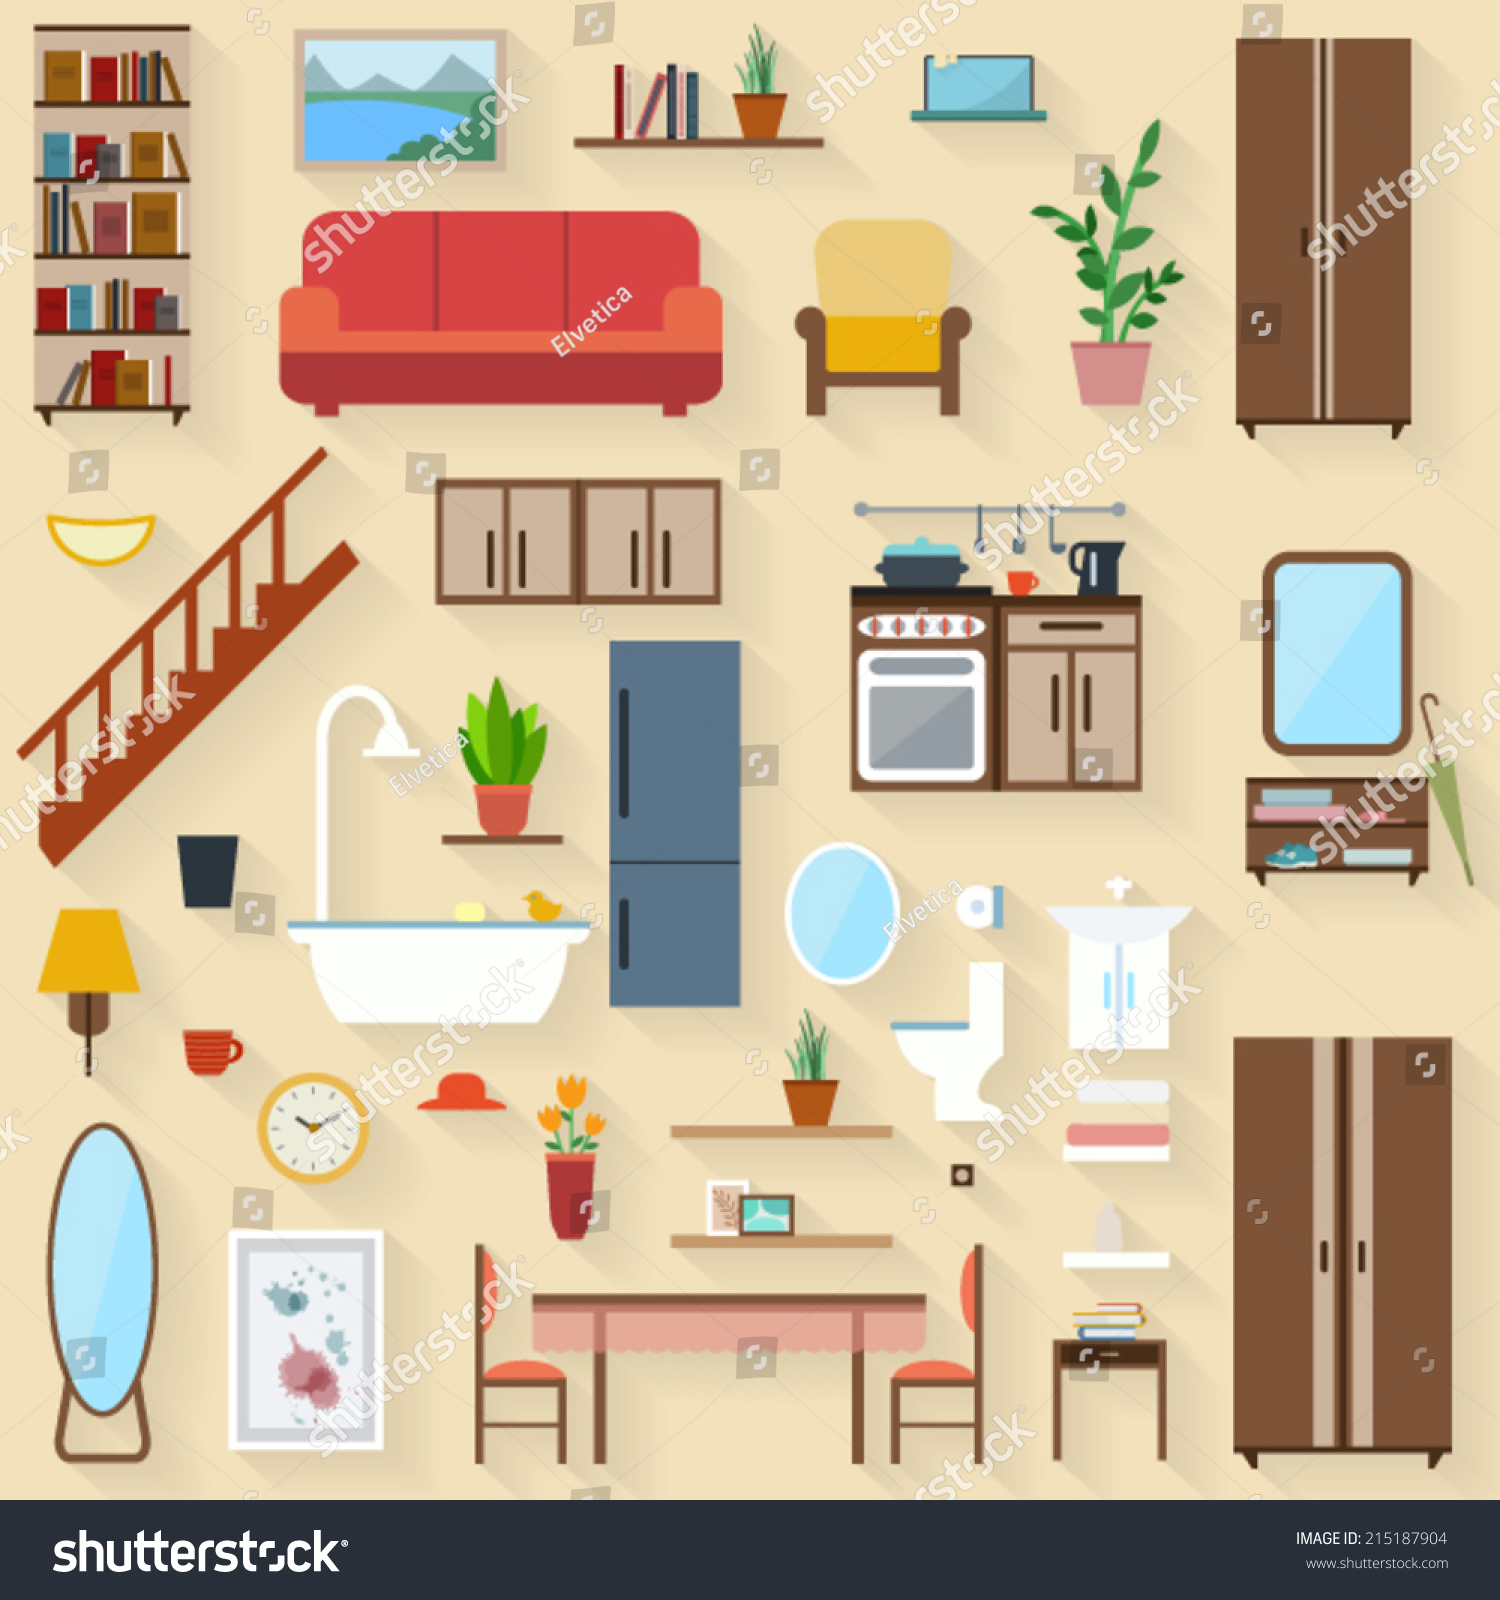 Kitchen Furniture Vocabulary: Furniture Set Rooms House Flat Style Stock Vector